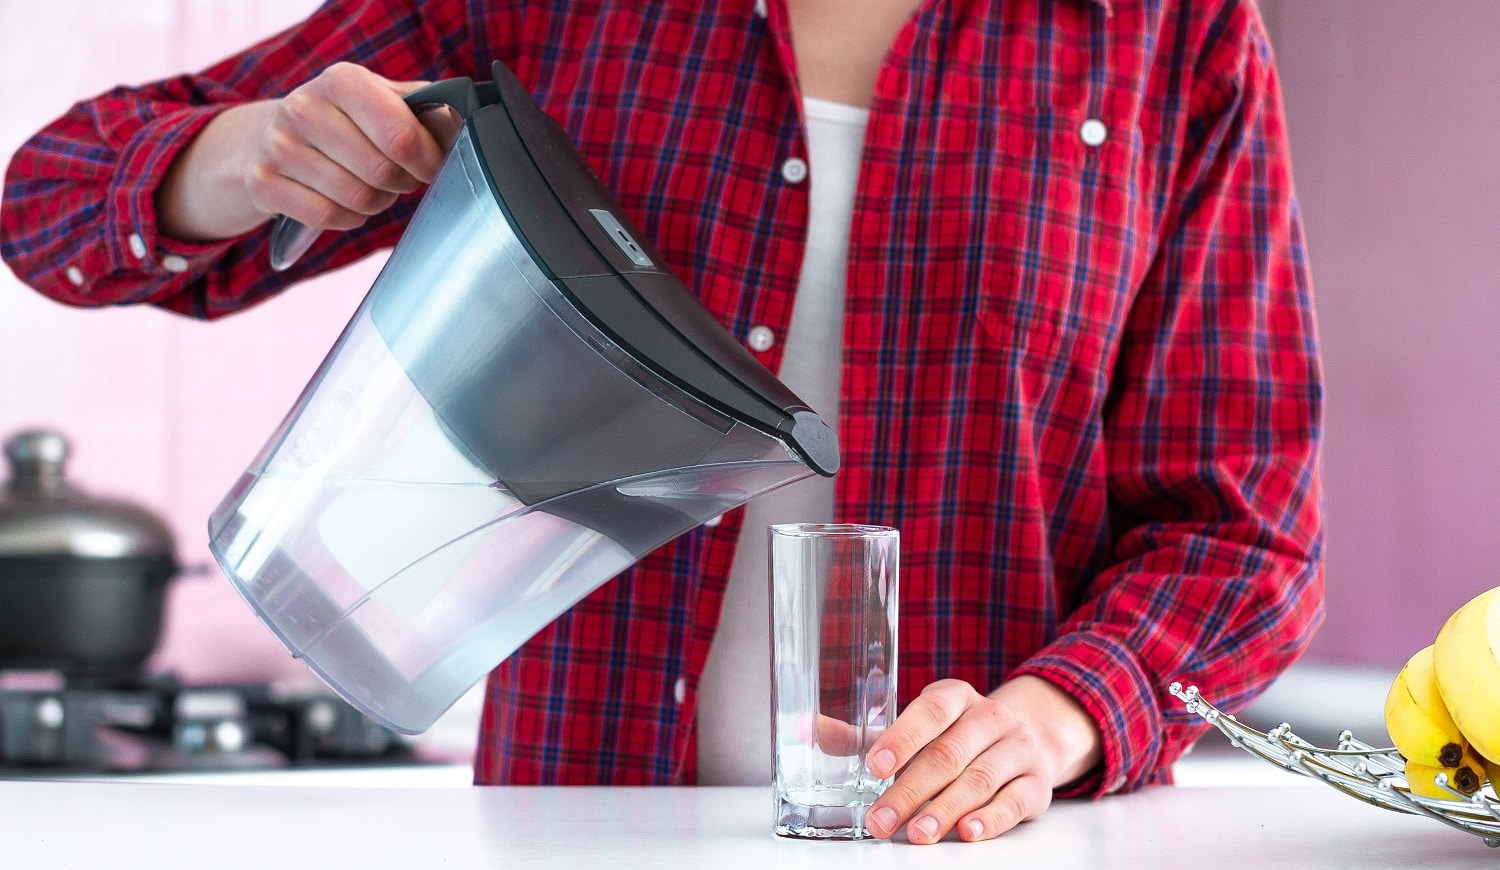 Fresh filtered water from water filter for drink. Healthy lifestyle. Water purification at home